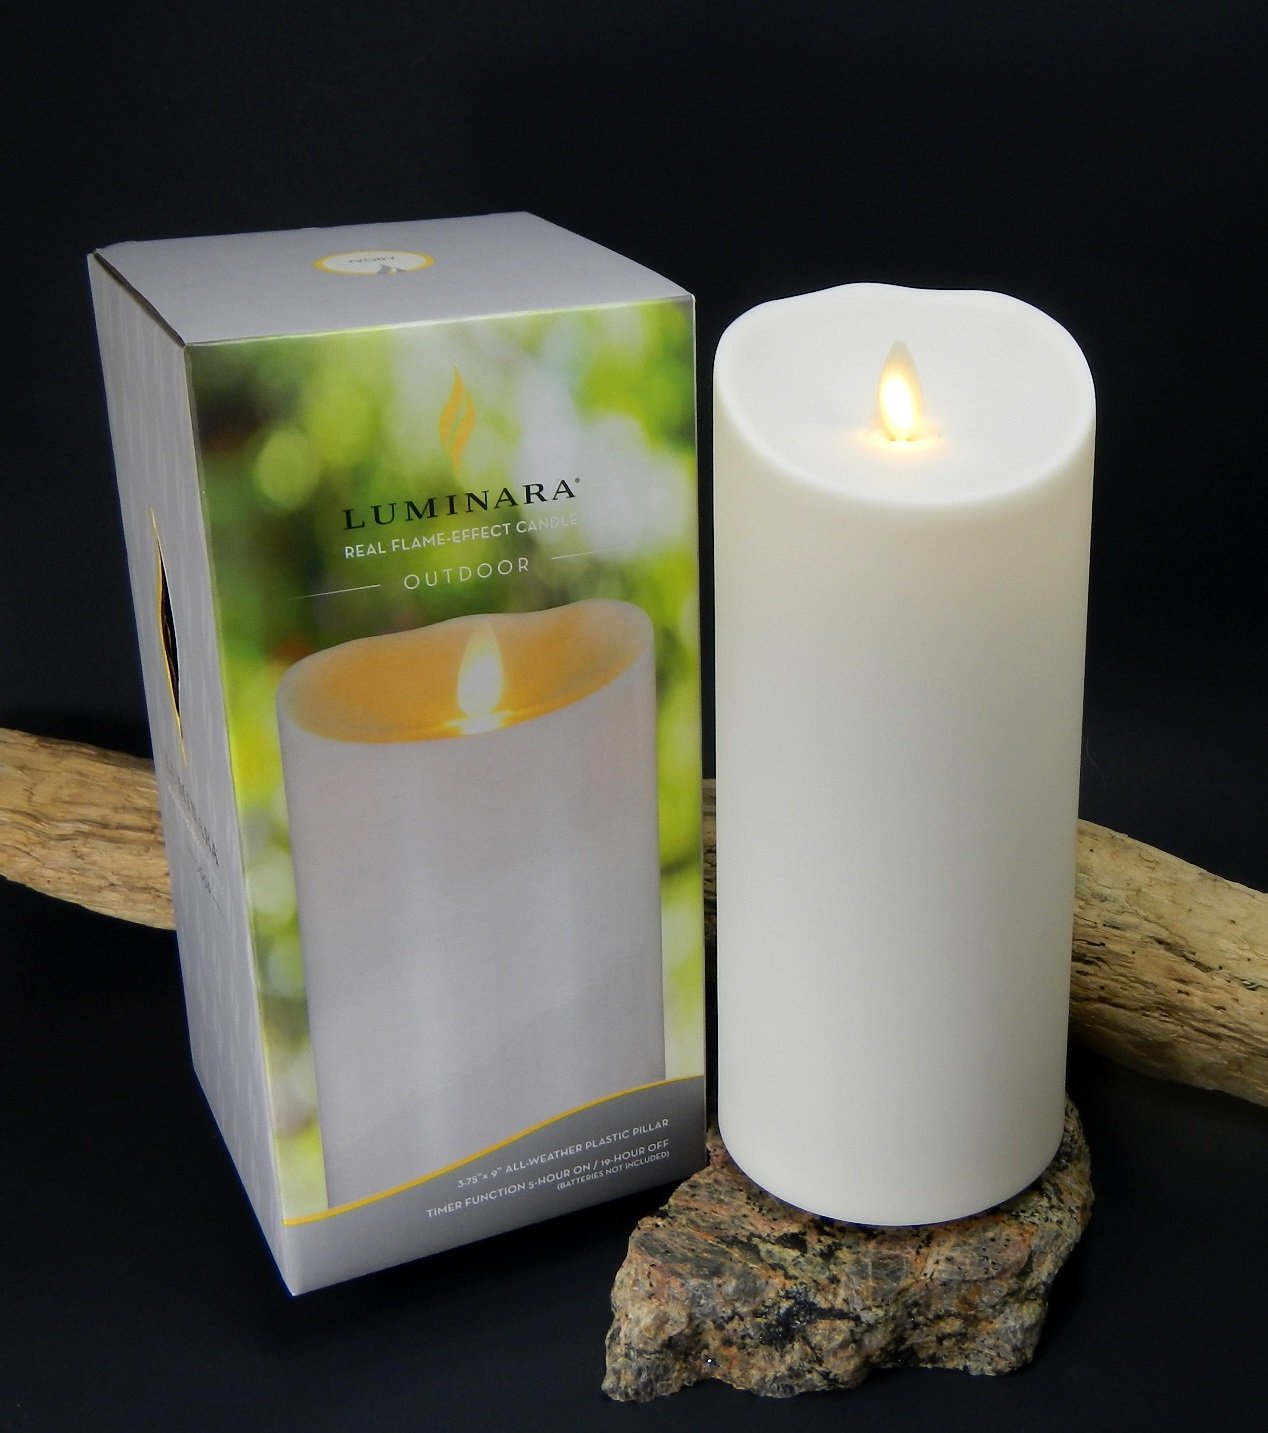 Luminara outdoor candle with box